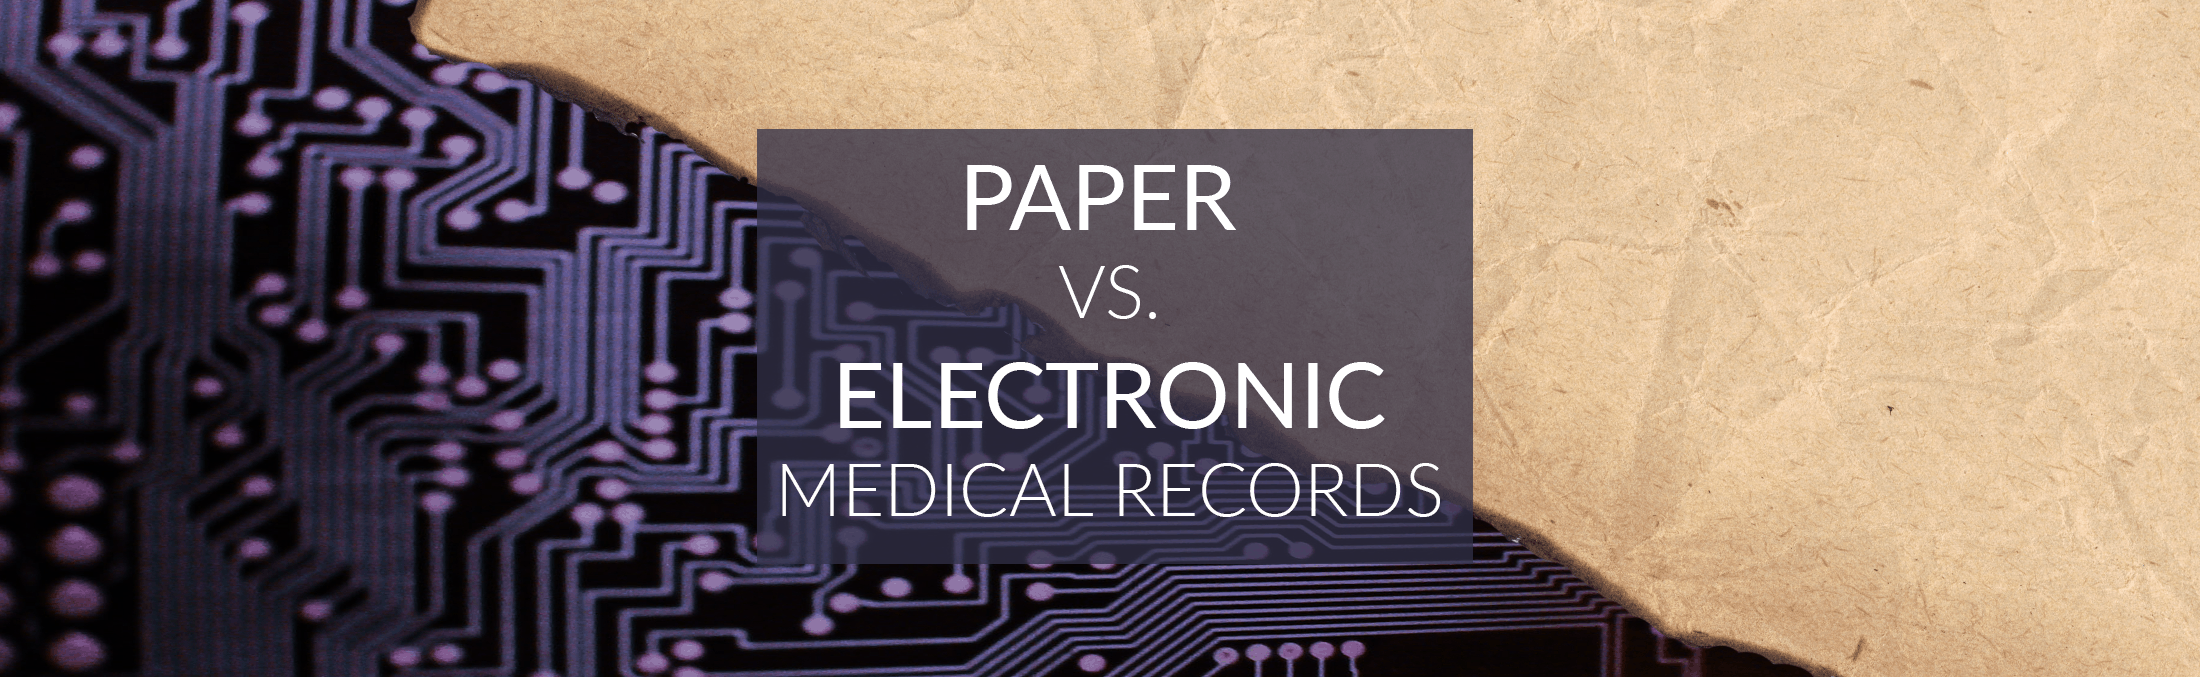 electronic medical records paper As technology improves, the debate over whether to store medical records on paper or electronically grows the issue is up for debate on a number of fronts, as both paper and electronic records offer strengths and weaknesses as medical facilities typically have years, if not decades, of paper records already, it can.